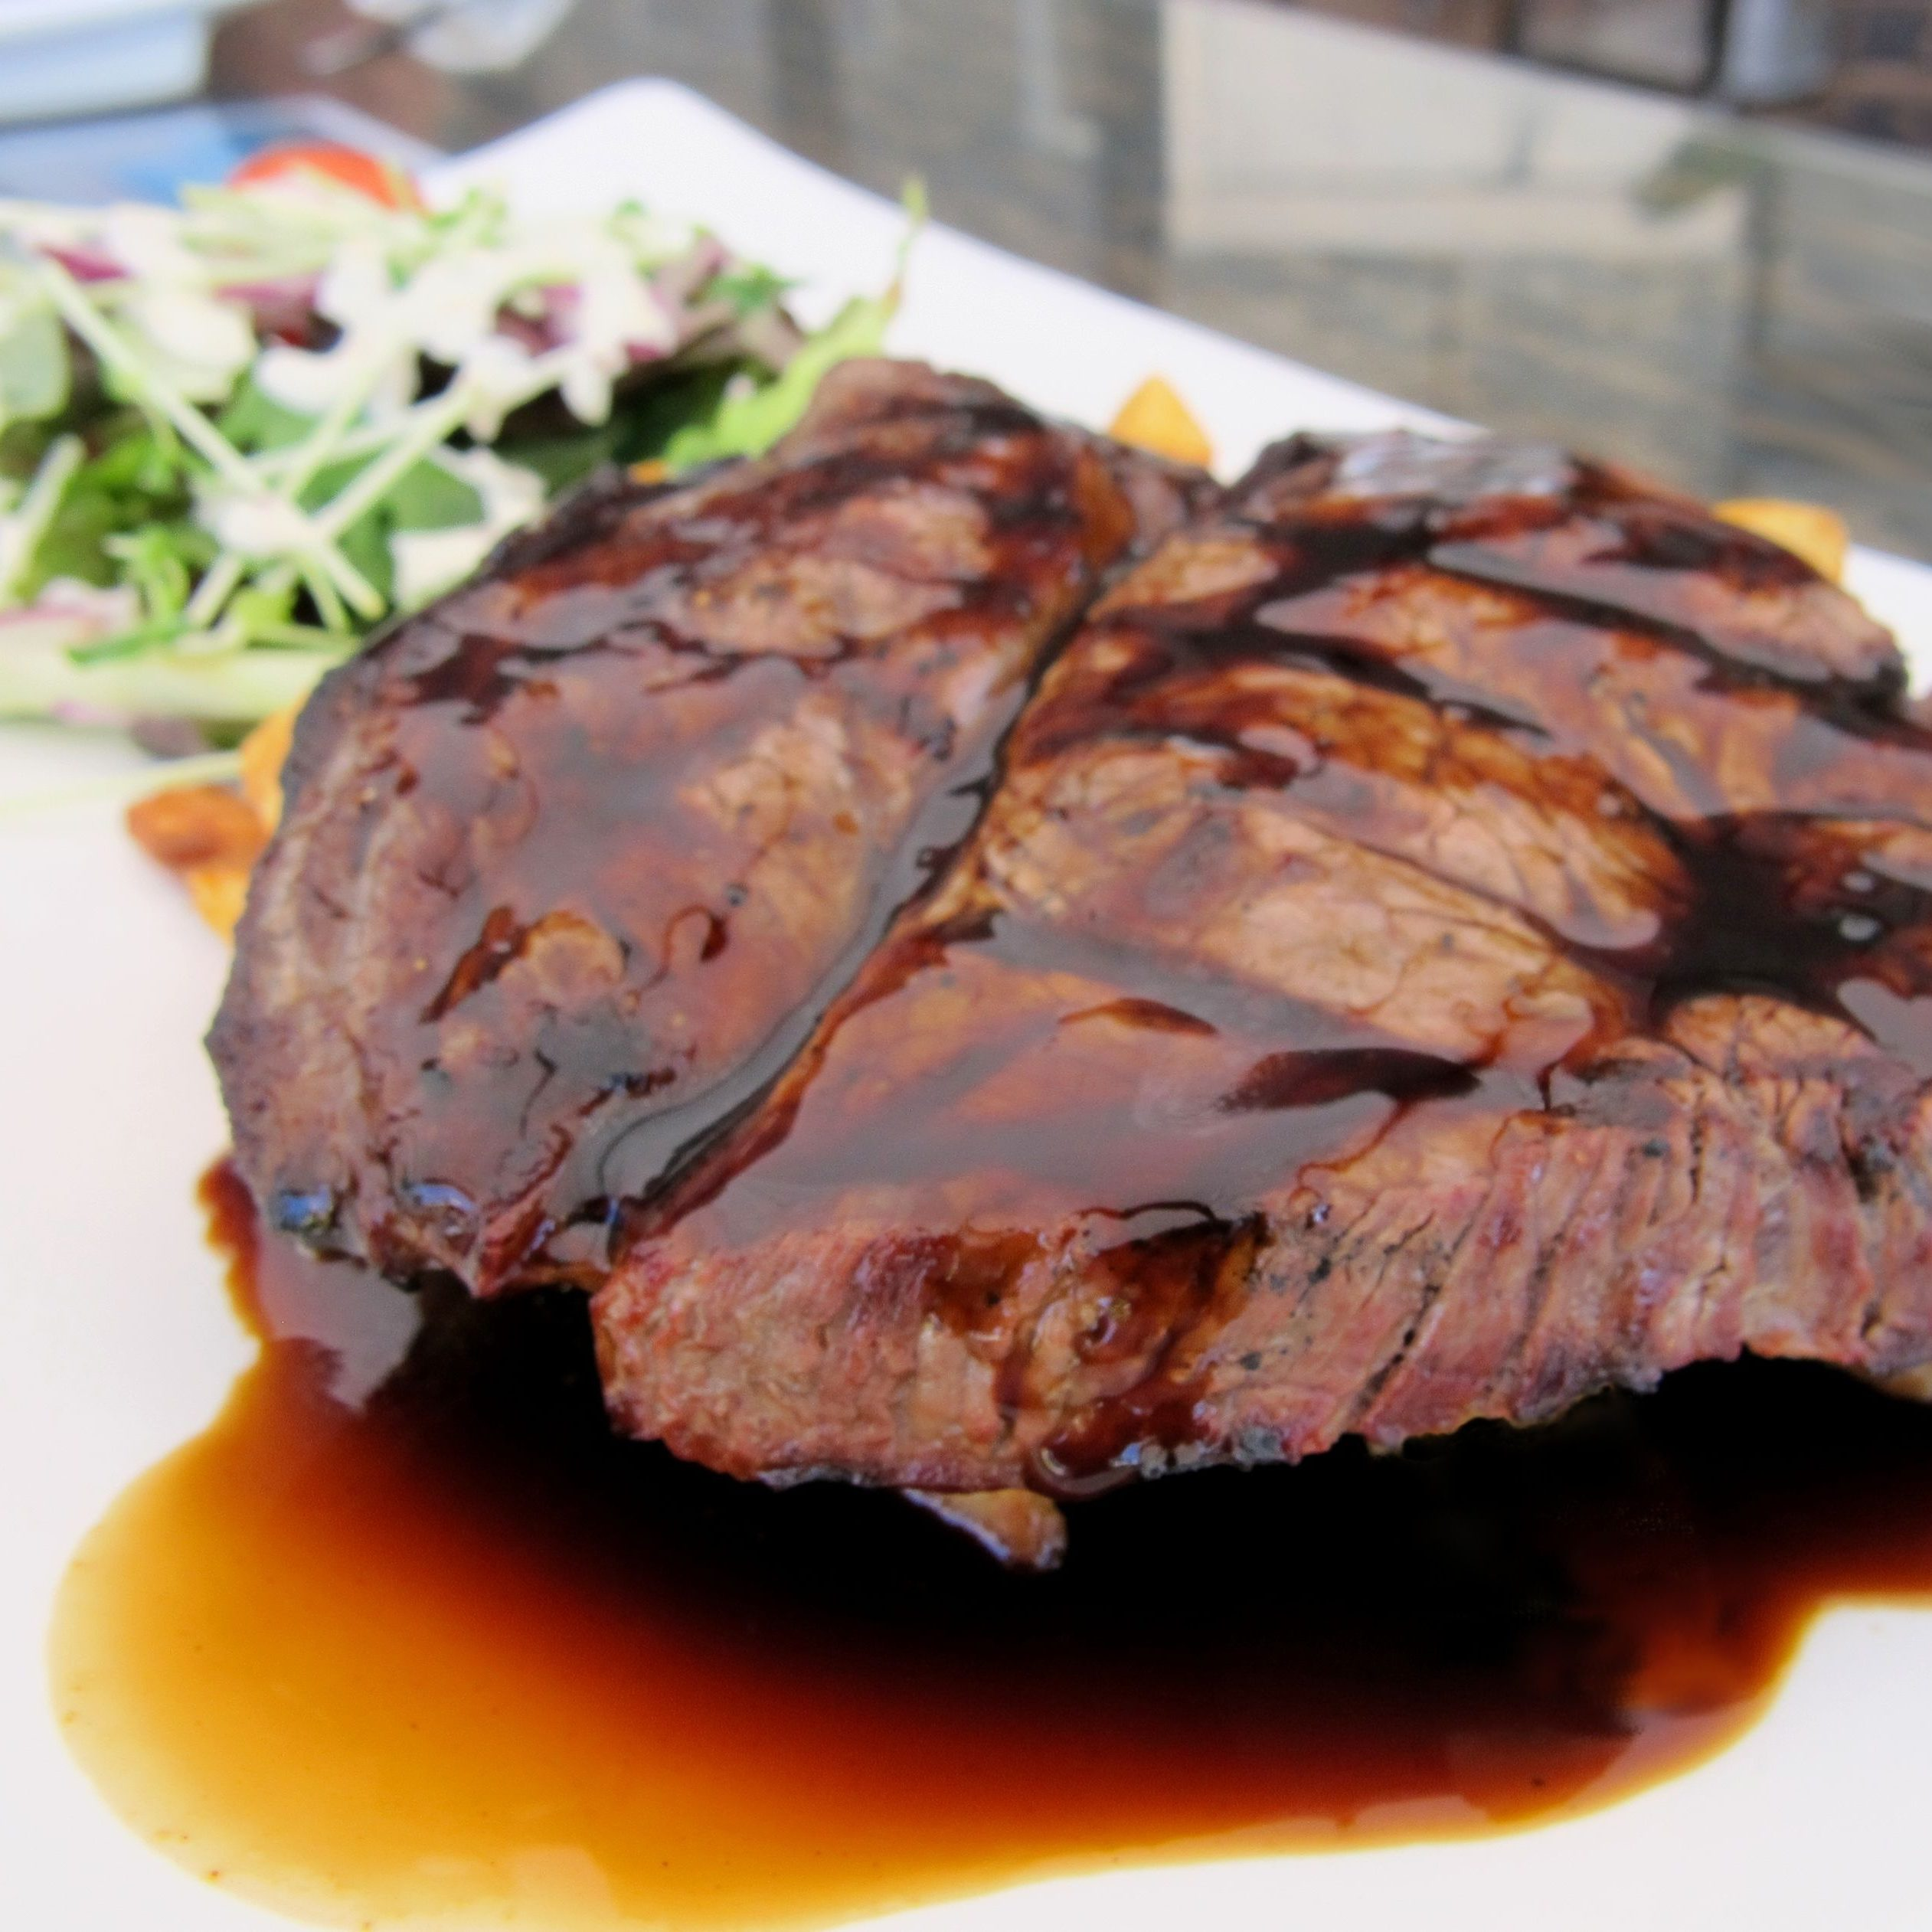 Grilled beef with guiness sauce